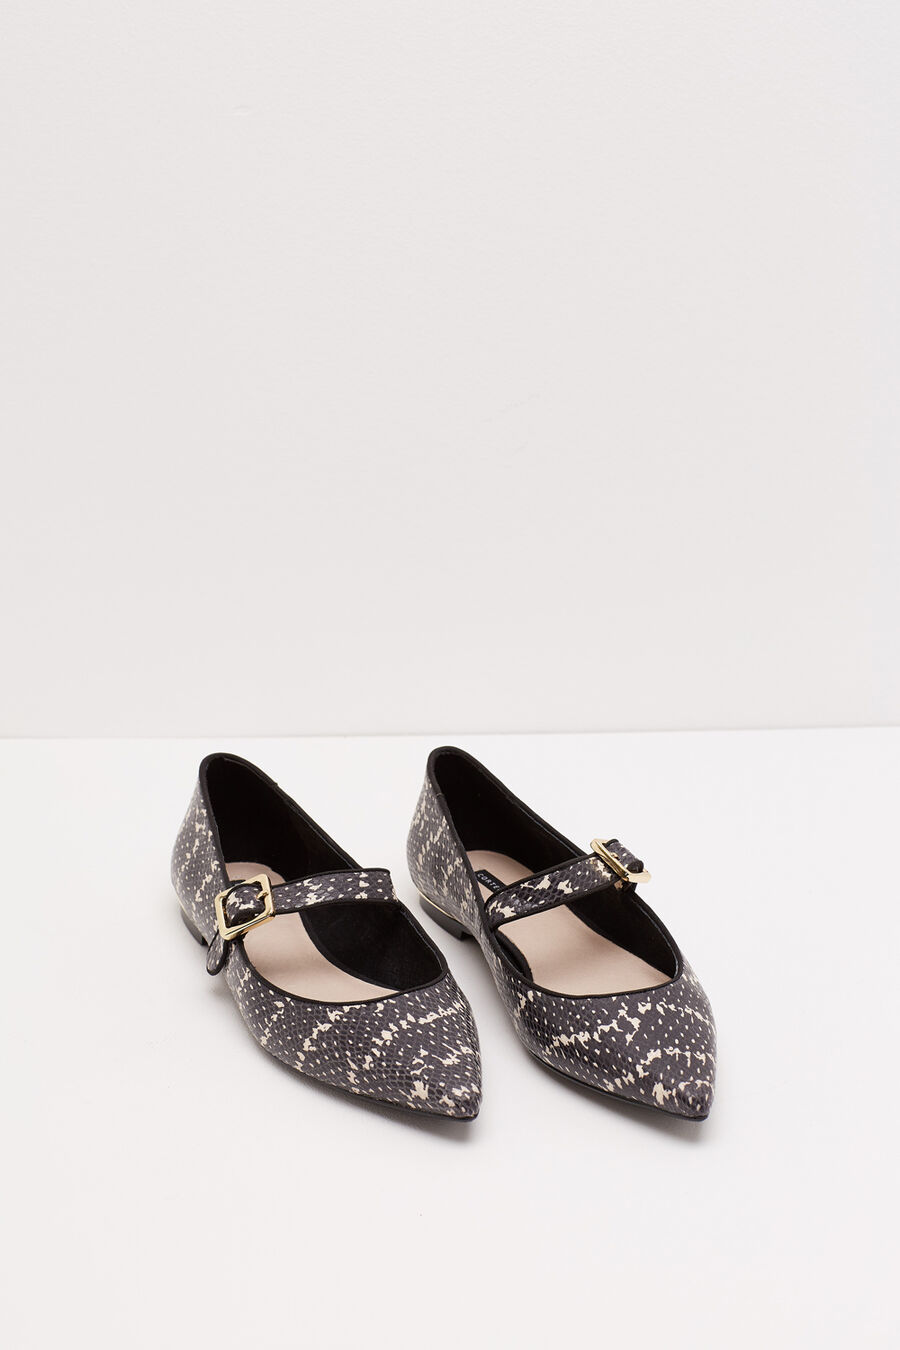 Mary Jane ballet pumps